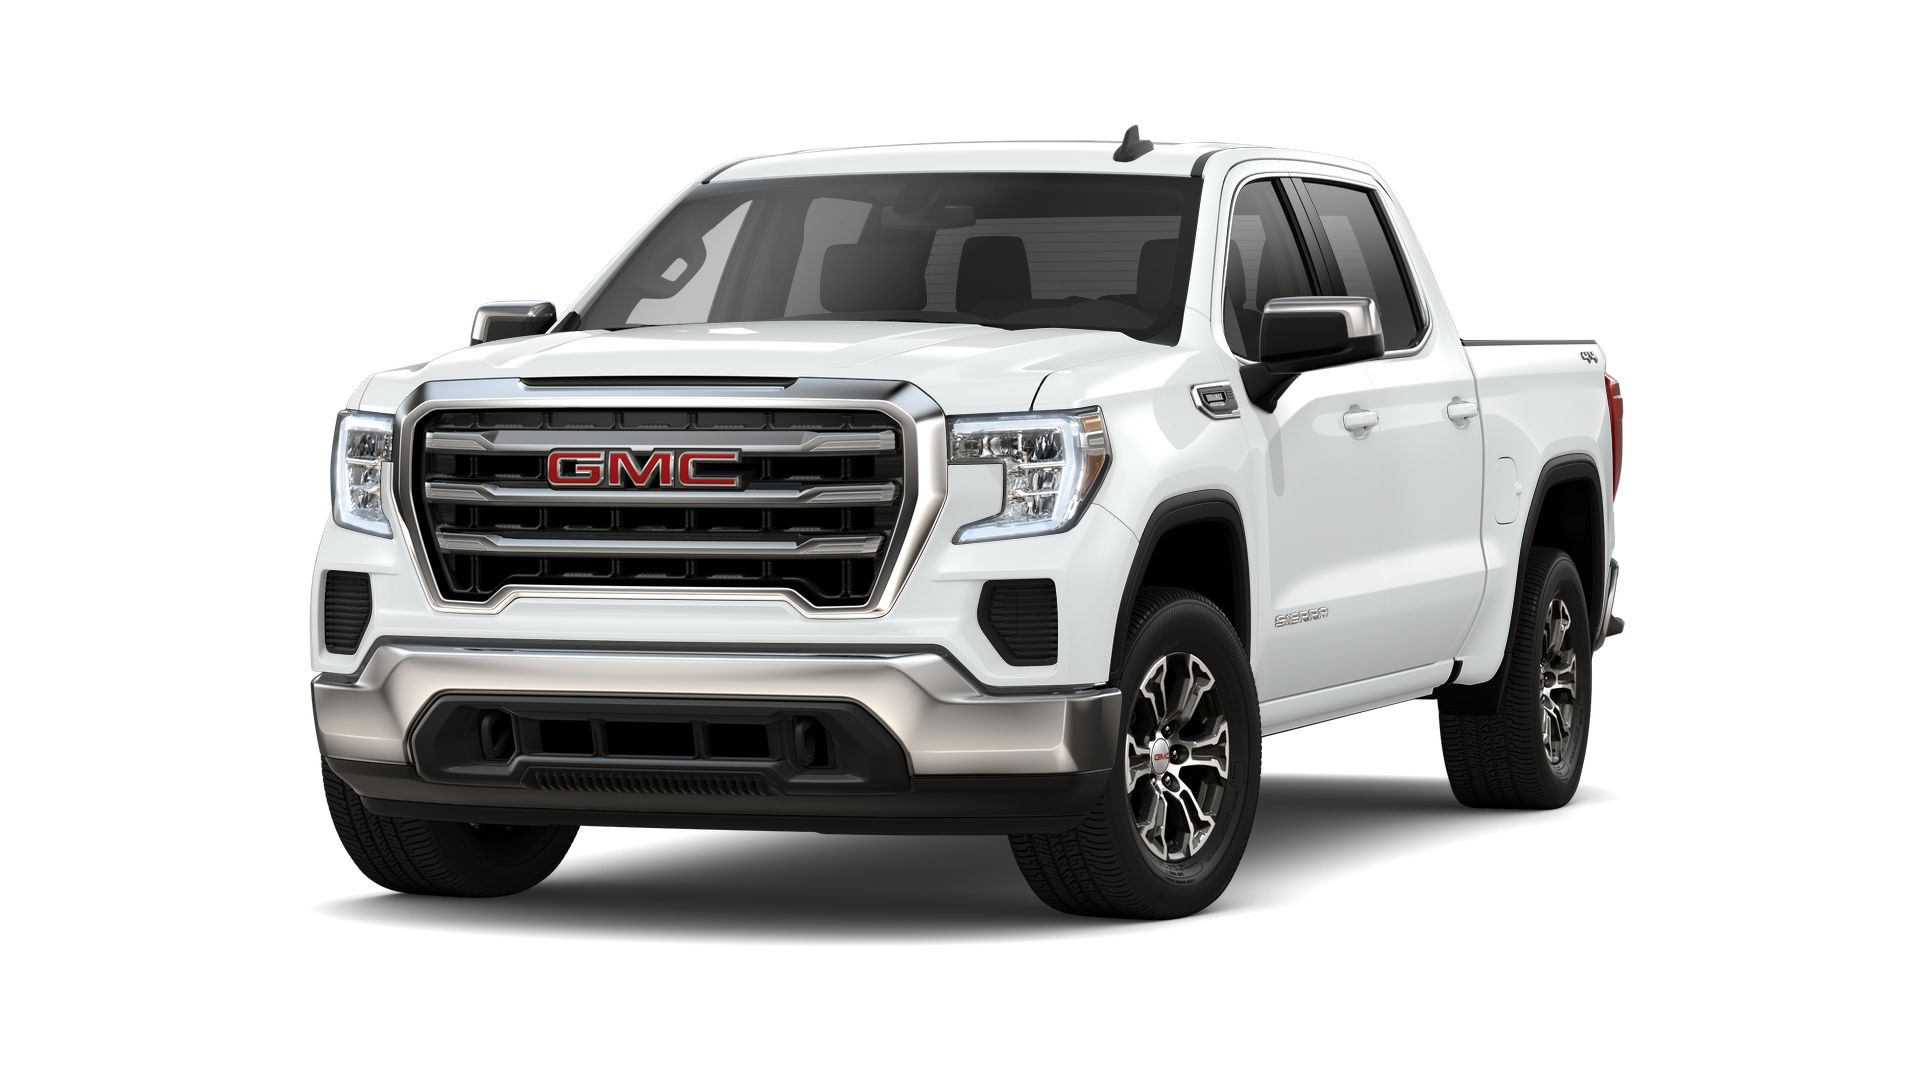 new 2021 gmc sierra 1500 sle crew cab in perry #t50023